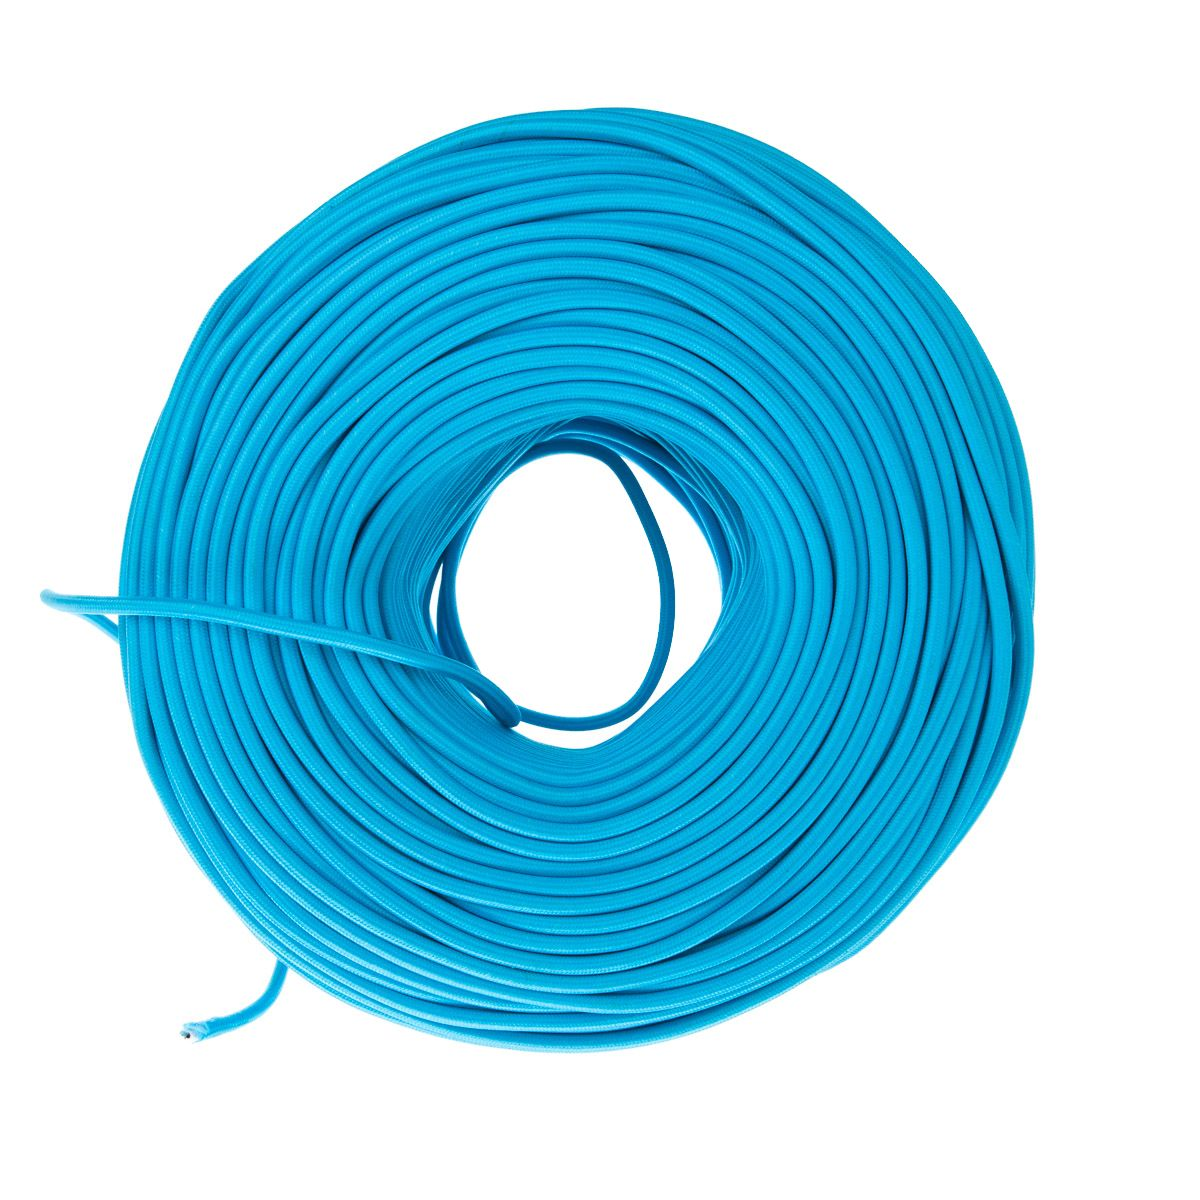 Cloth Covered Electrical Wire - Sky Blue | Color Cord Company